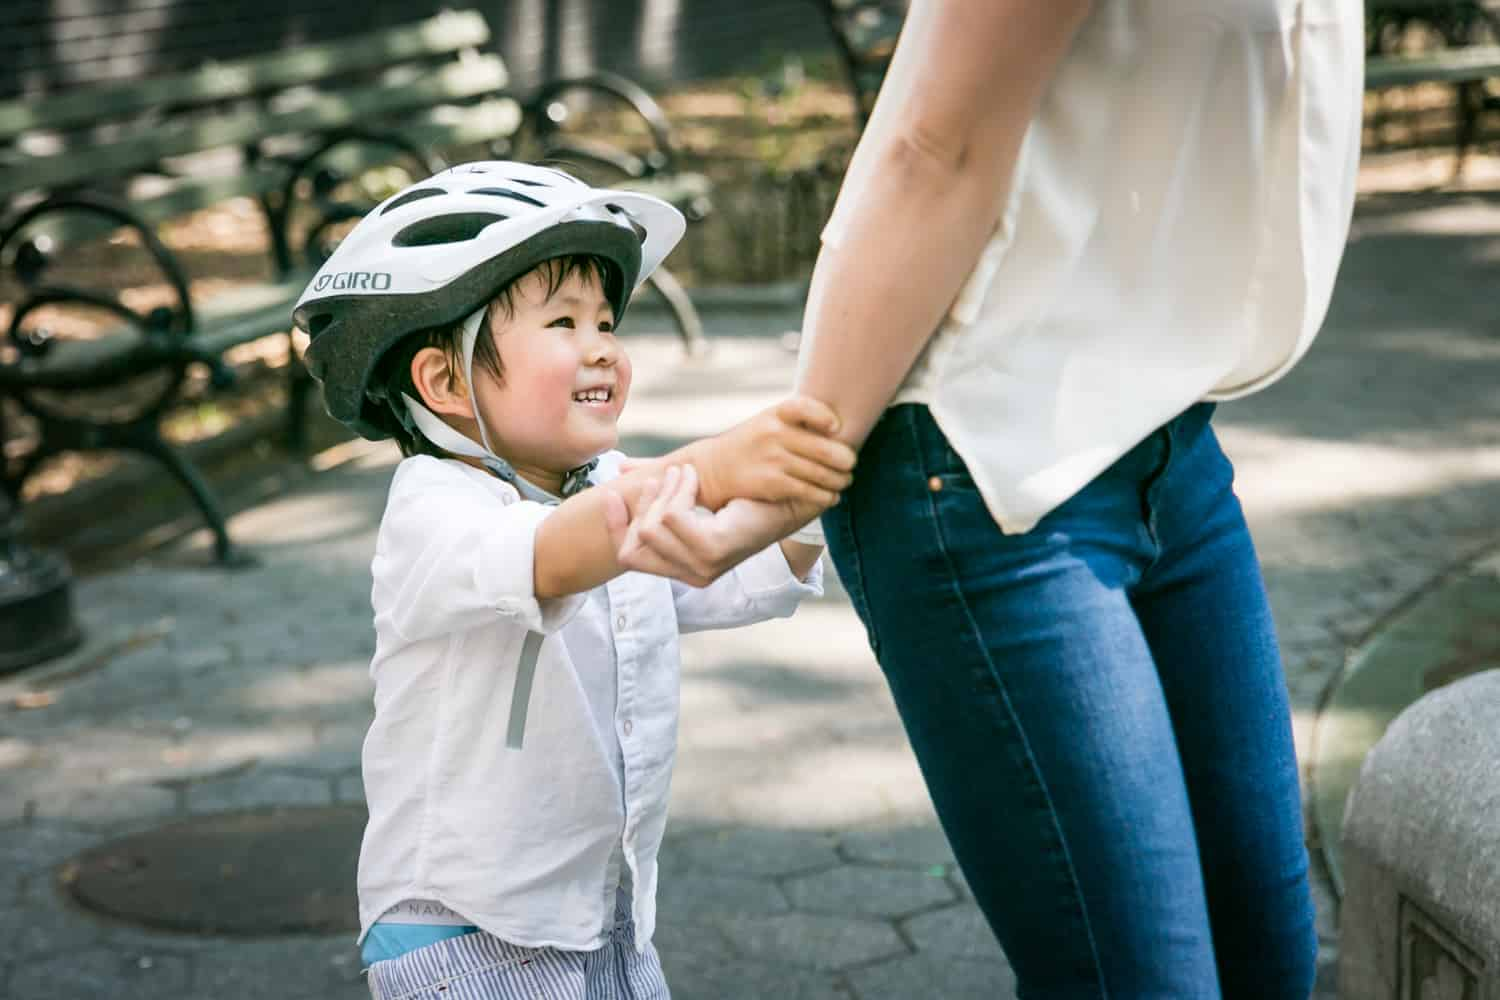 LIttle boy wearing bike helmet playing with mother